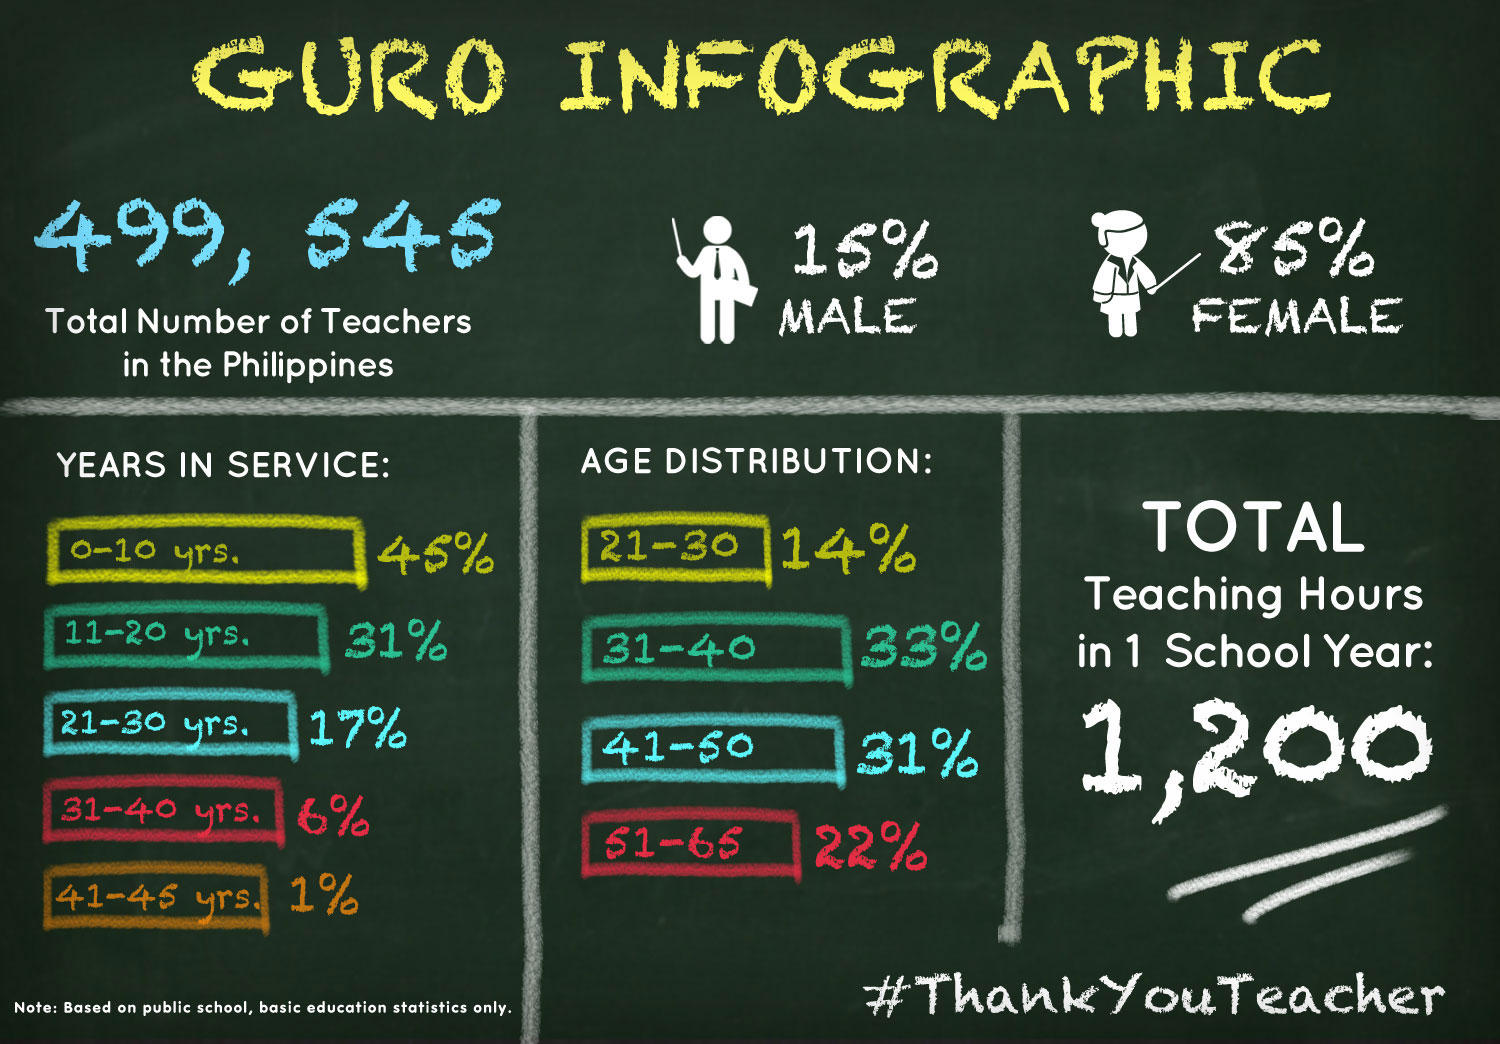 DepEd: Guro Infographic